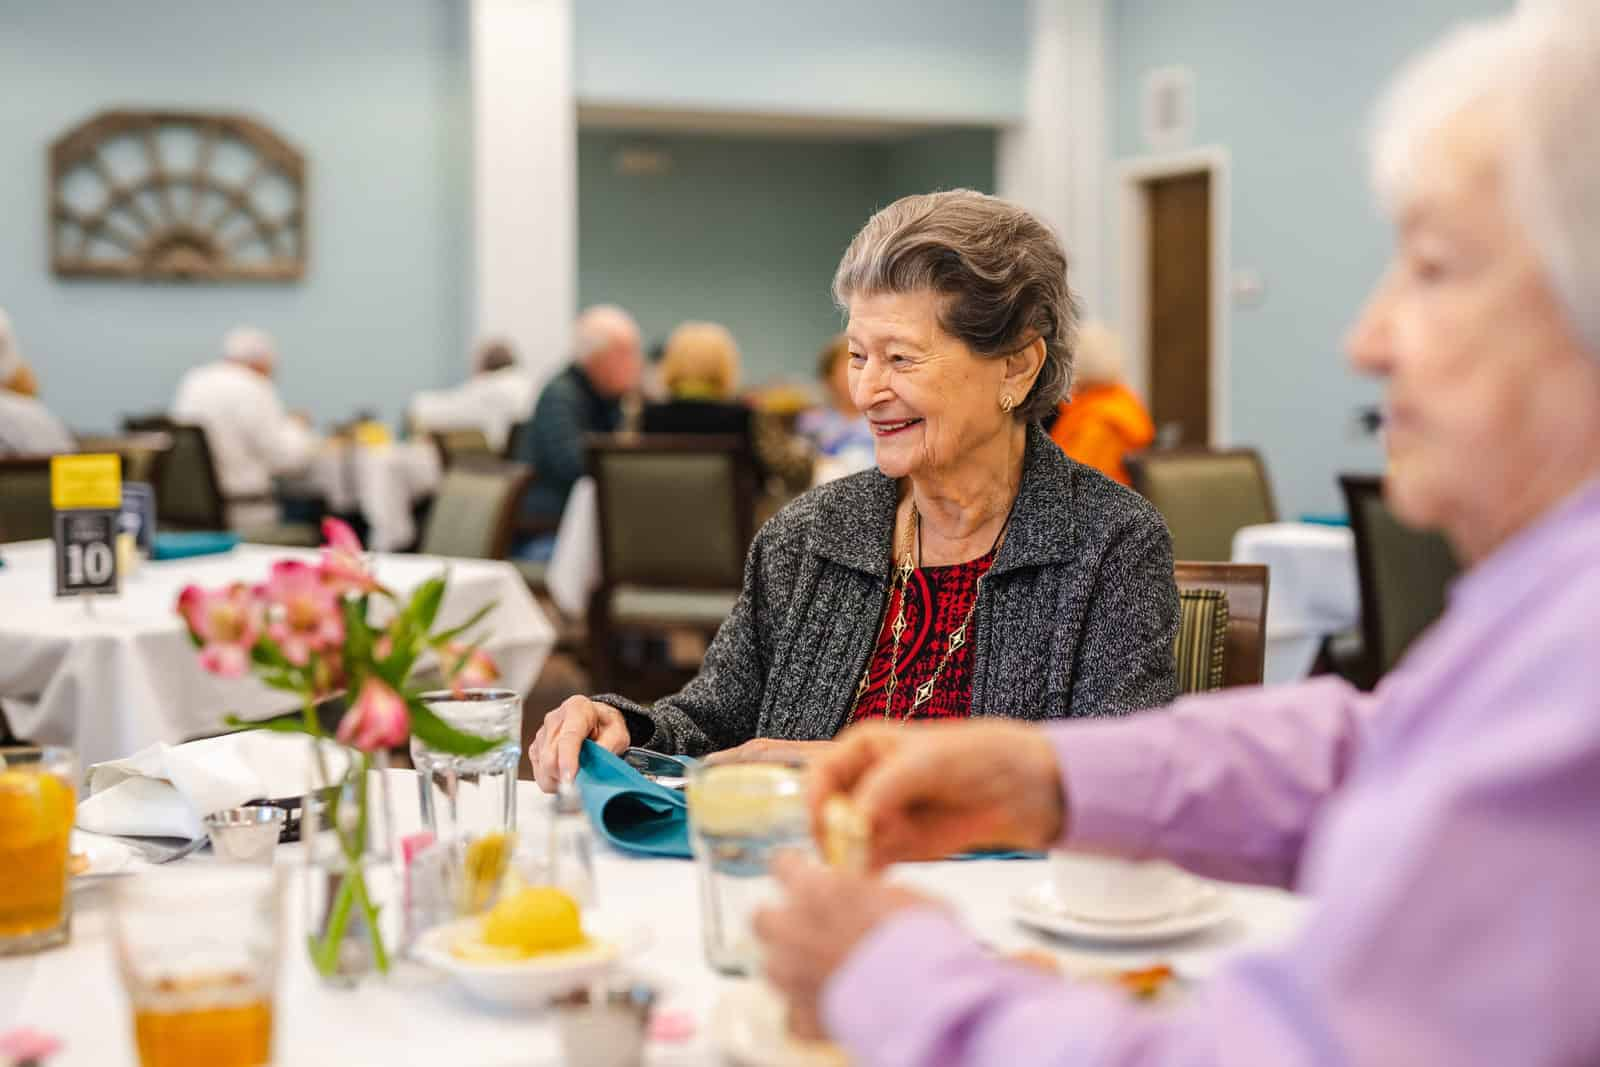 Smiling Senior Women Seated At Dining Table In Community Dining Room